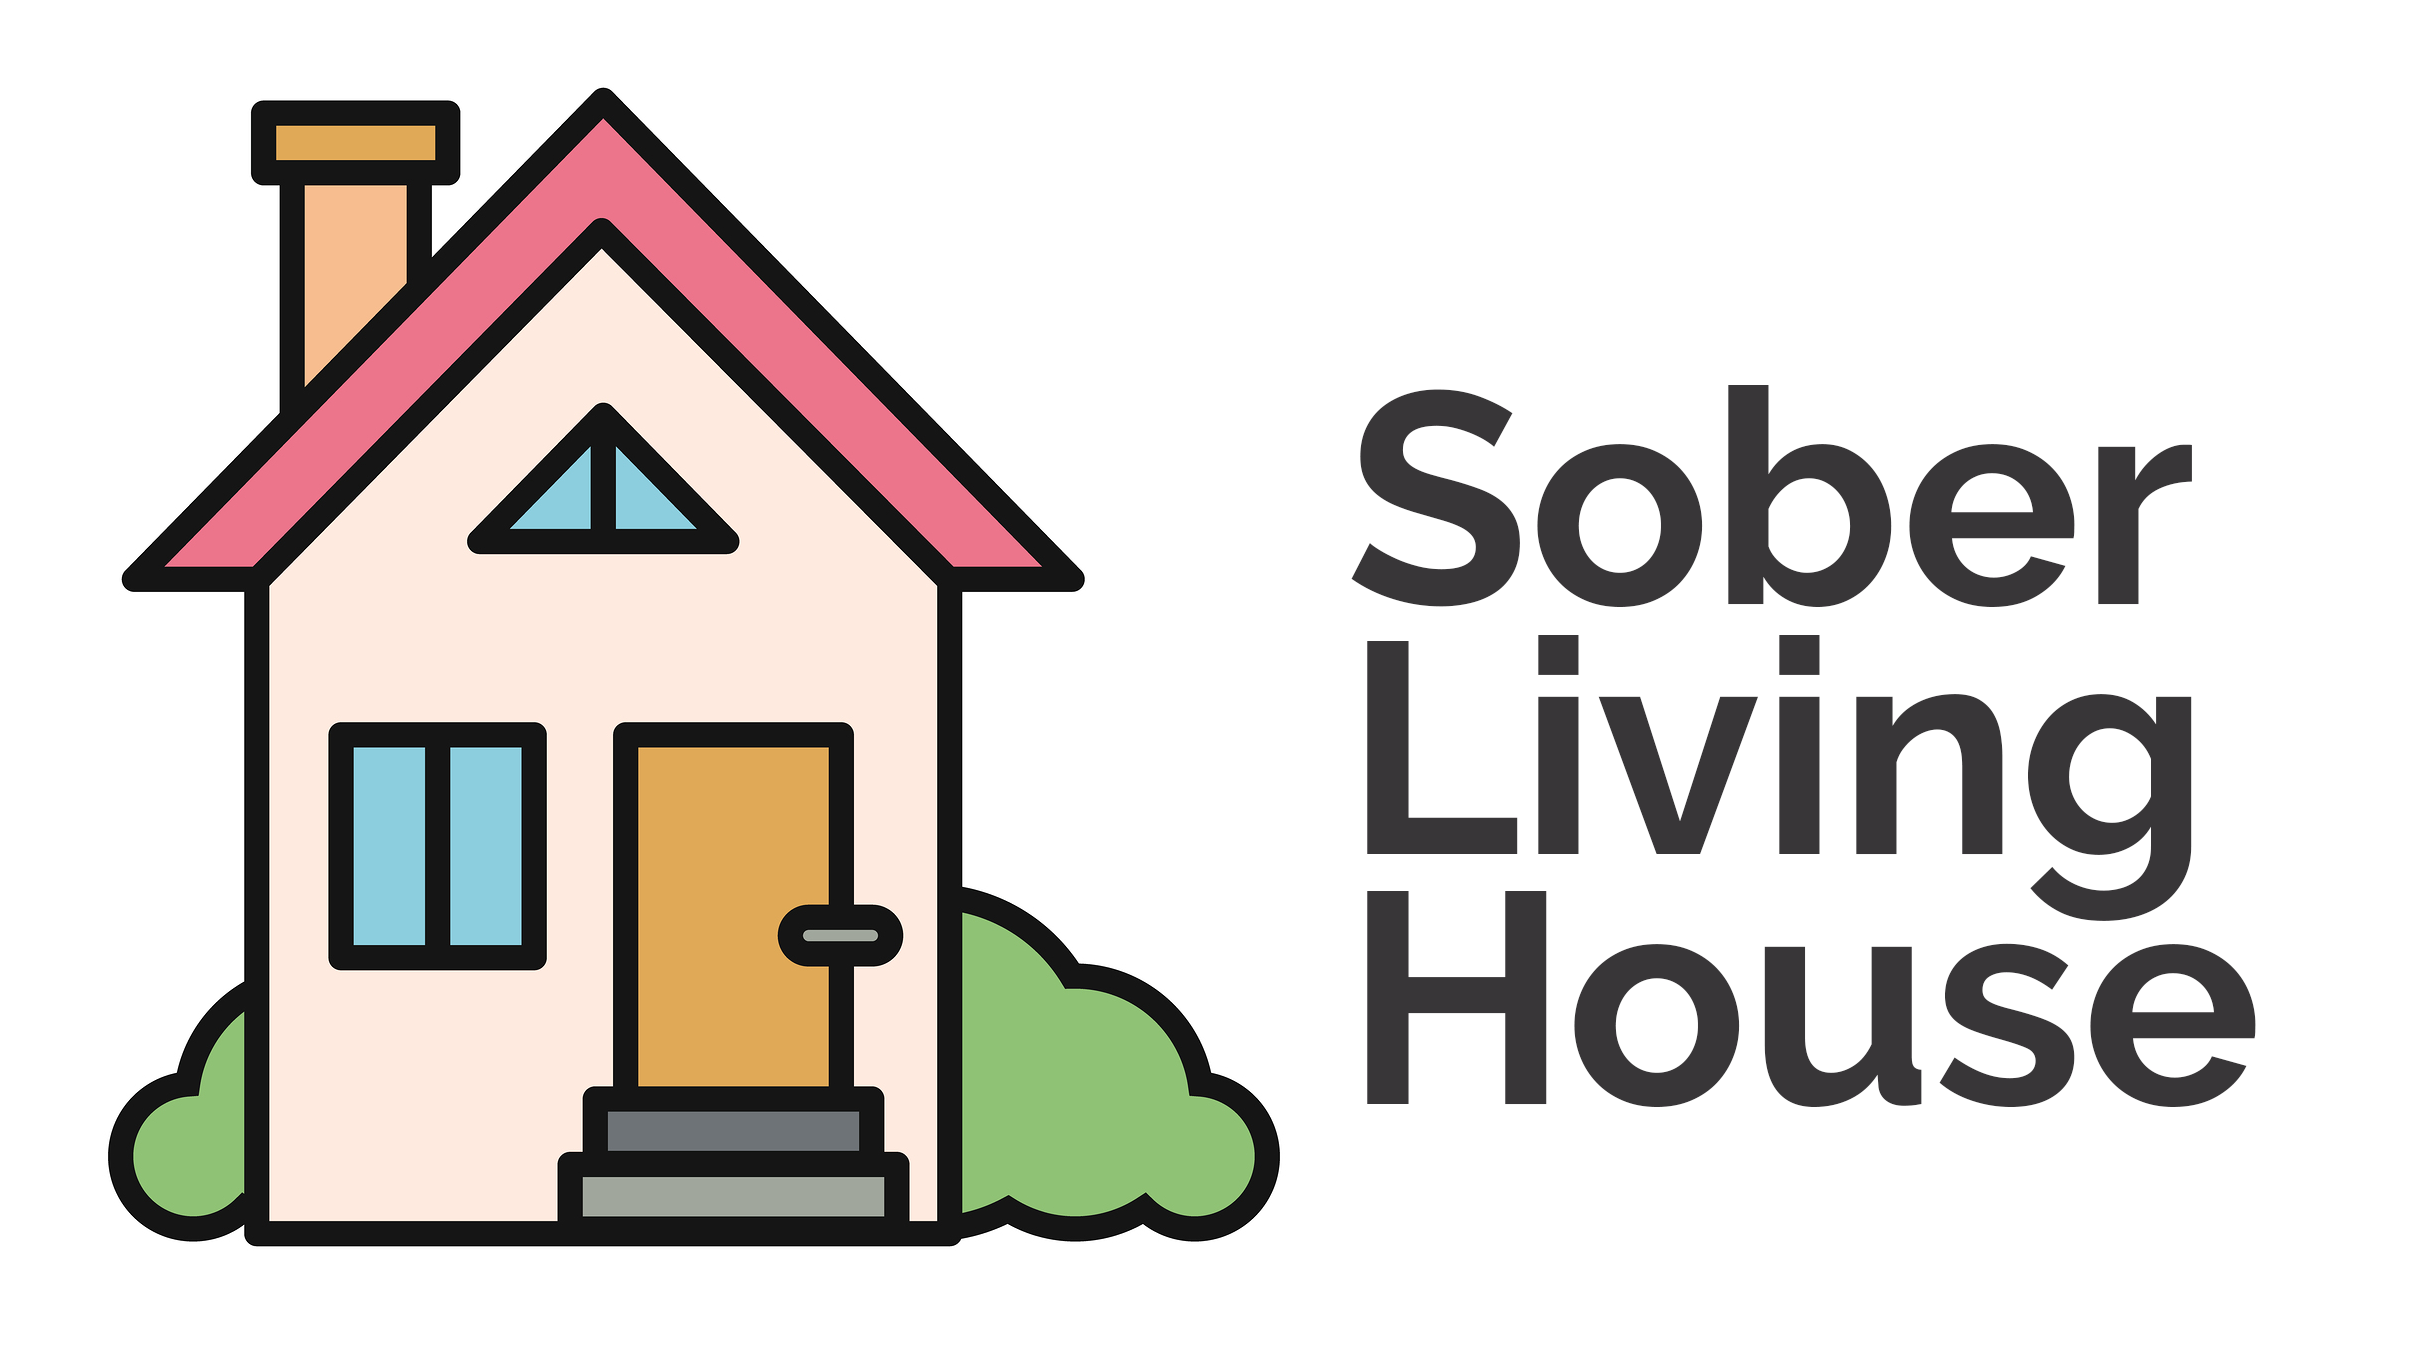 Sober Living - Does it help recovery?